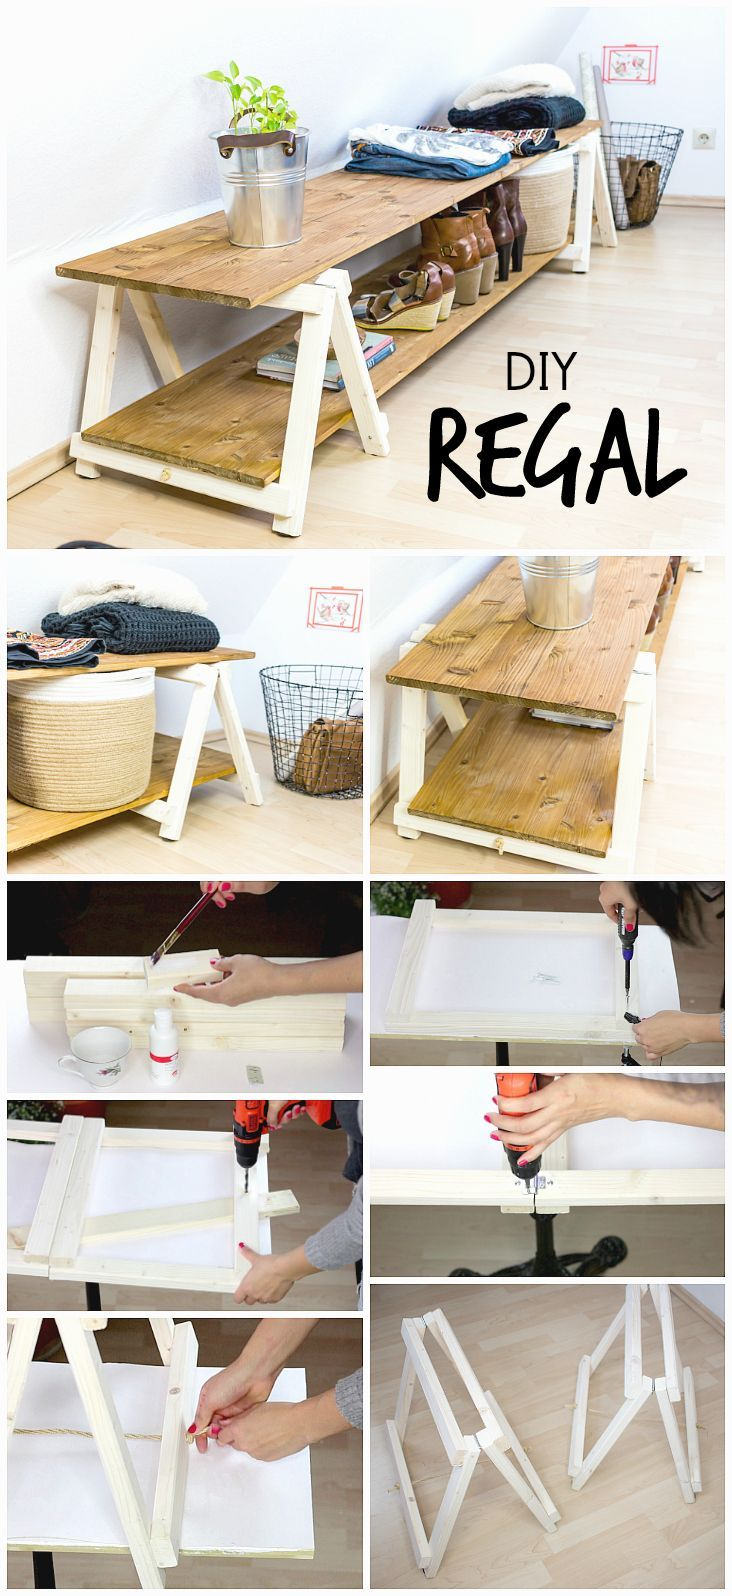 diy regal: regal bauen mit mini klappböcken | create with your hands